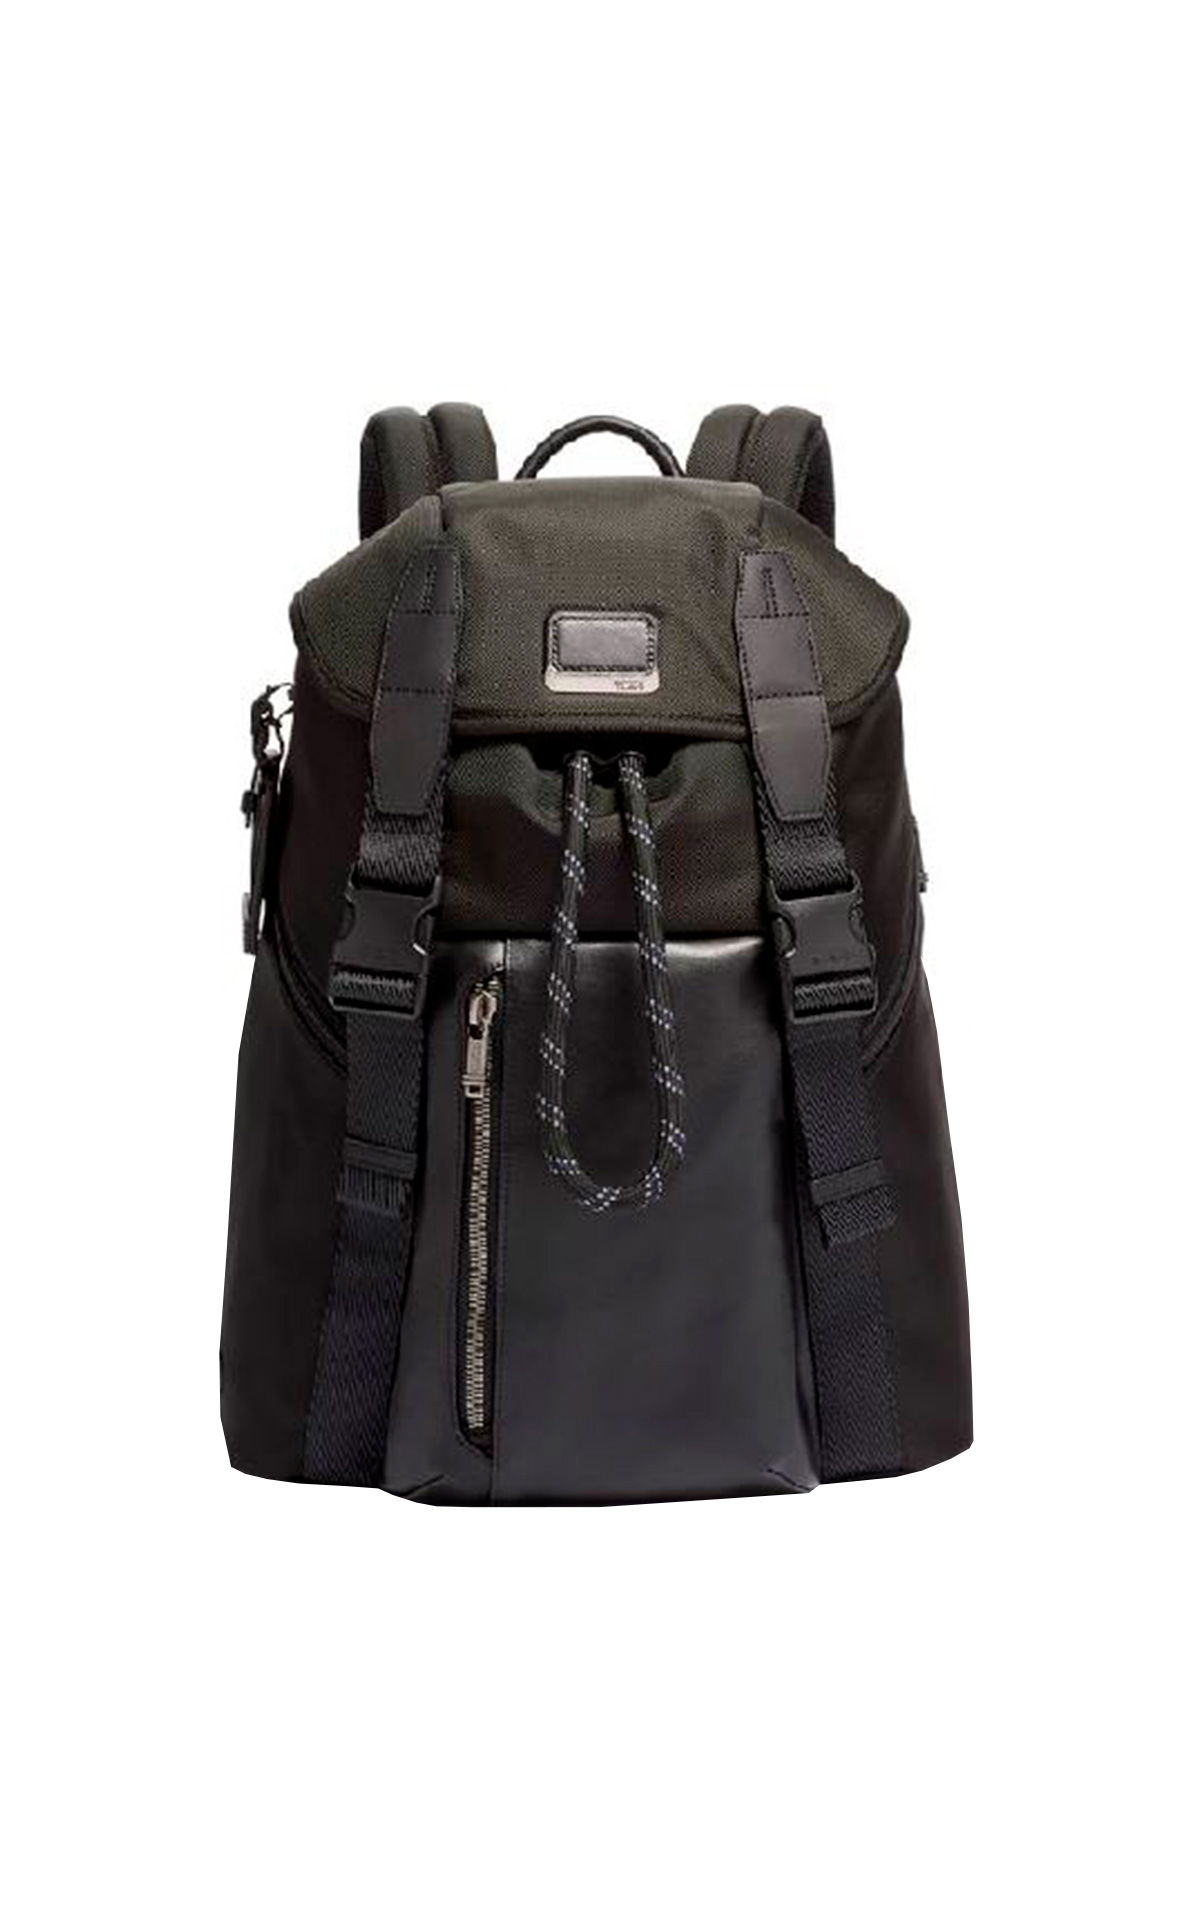 Douglas backpack Tumi